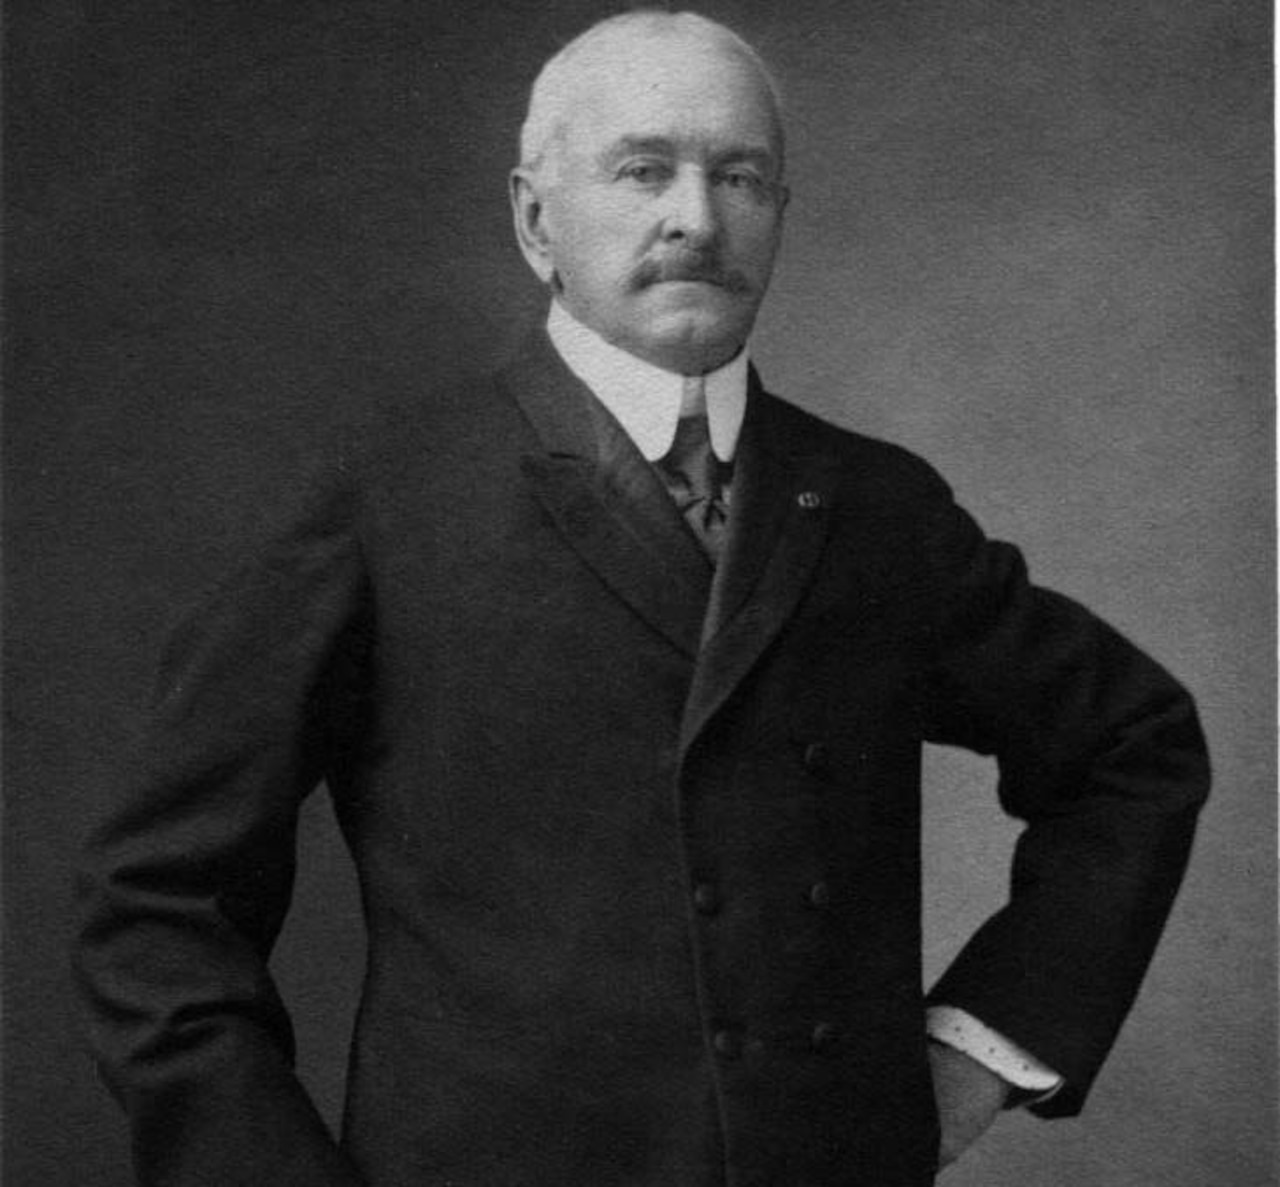 A man standing in a suit jacket rests his hand on his hip.